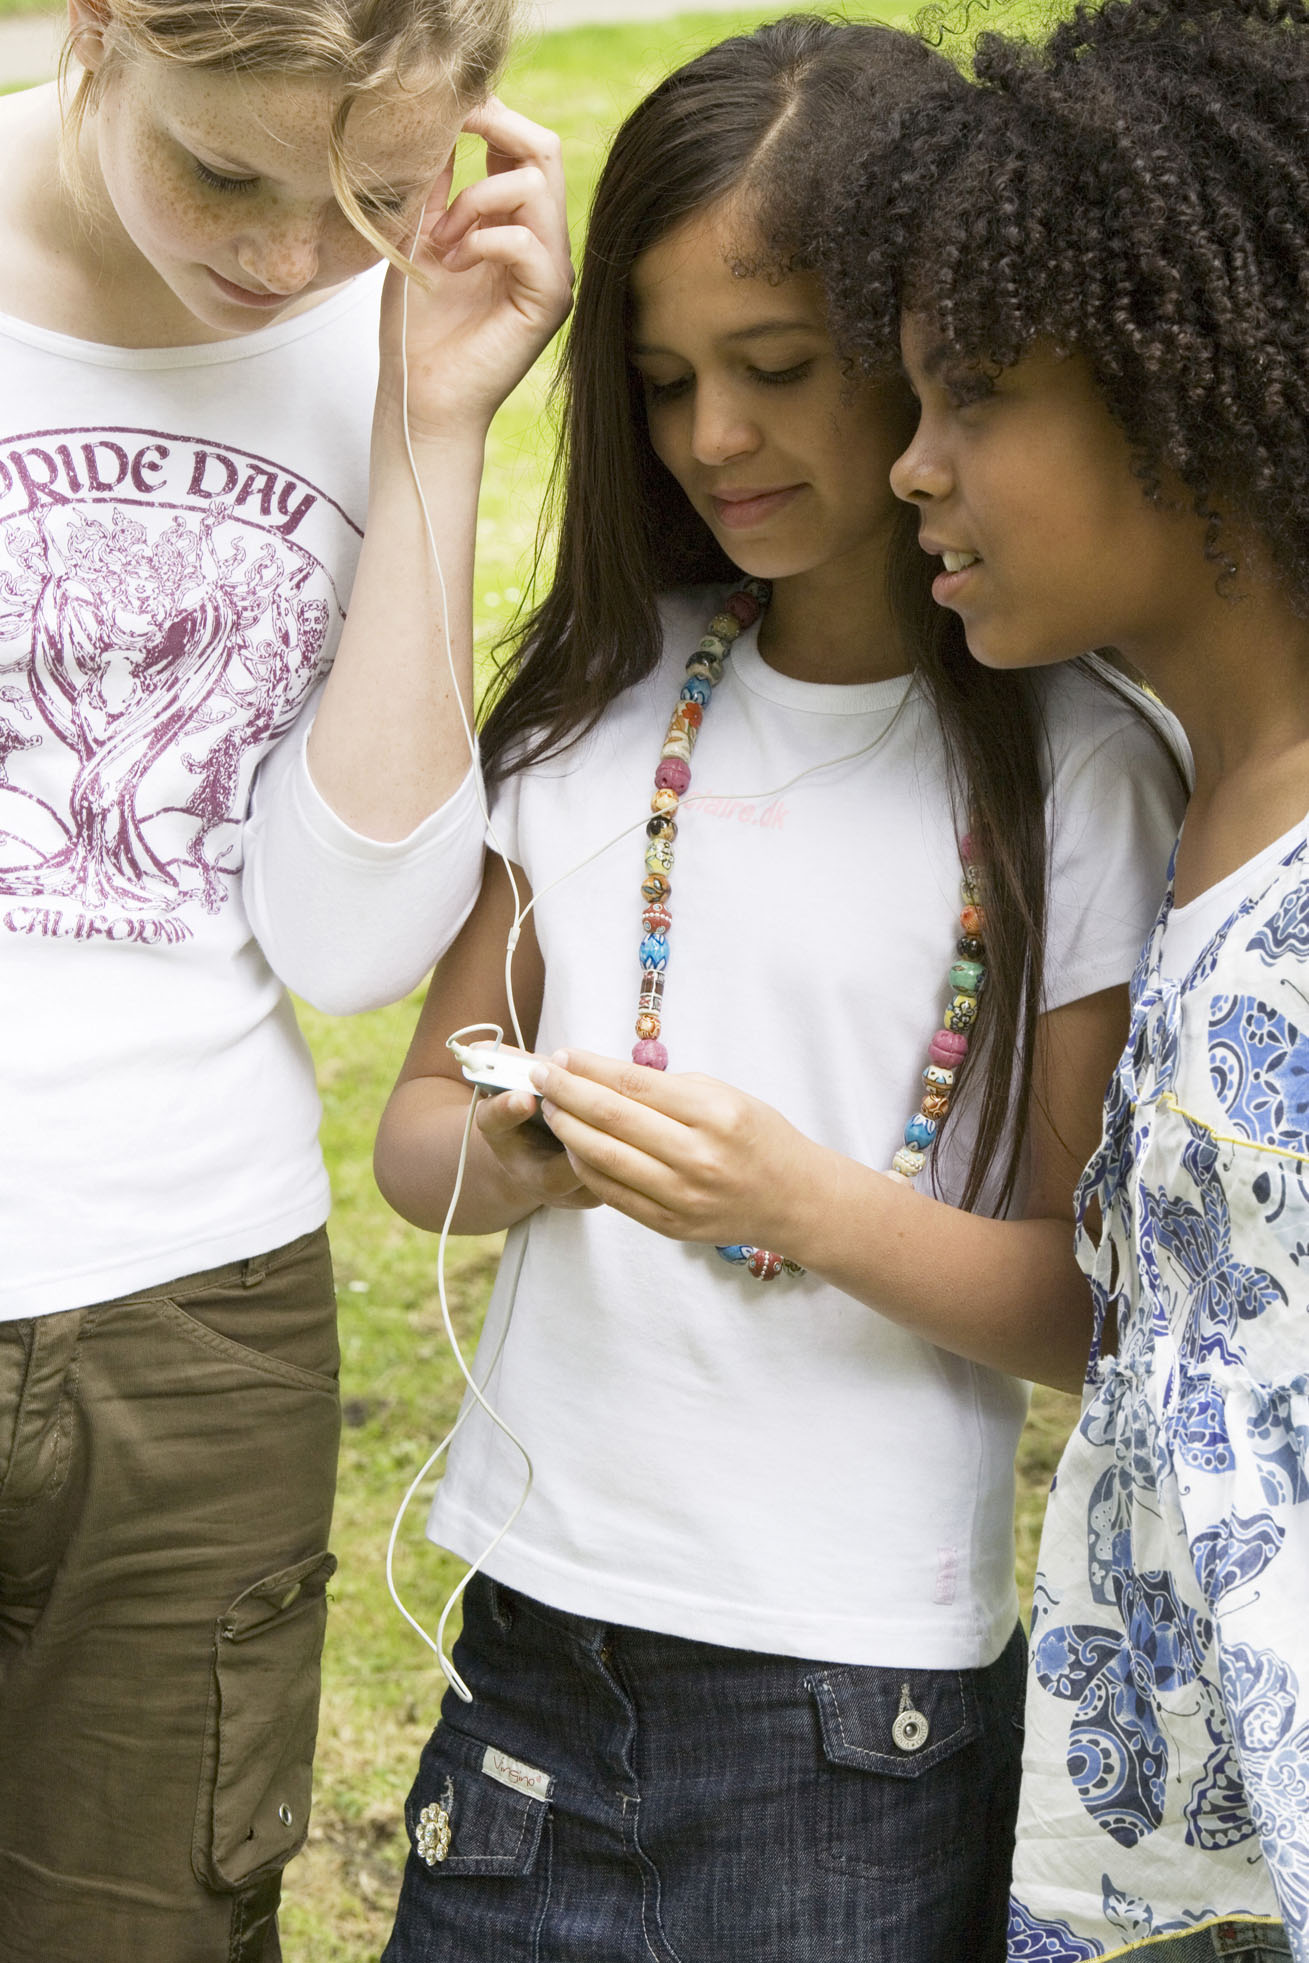 three girls looking at an ipod music player